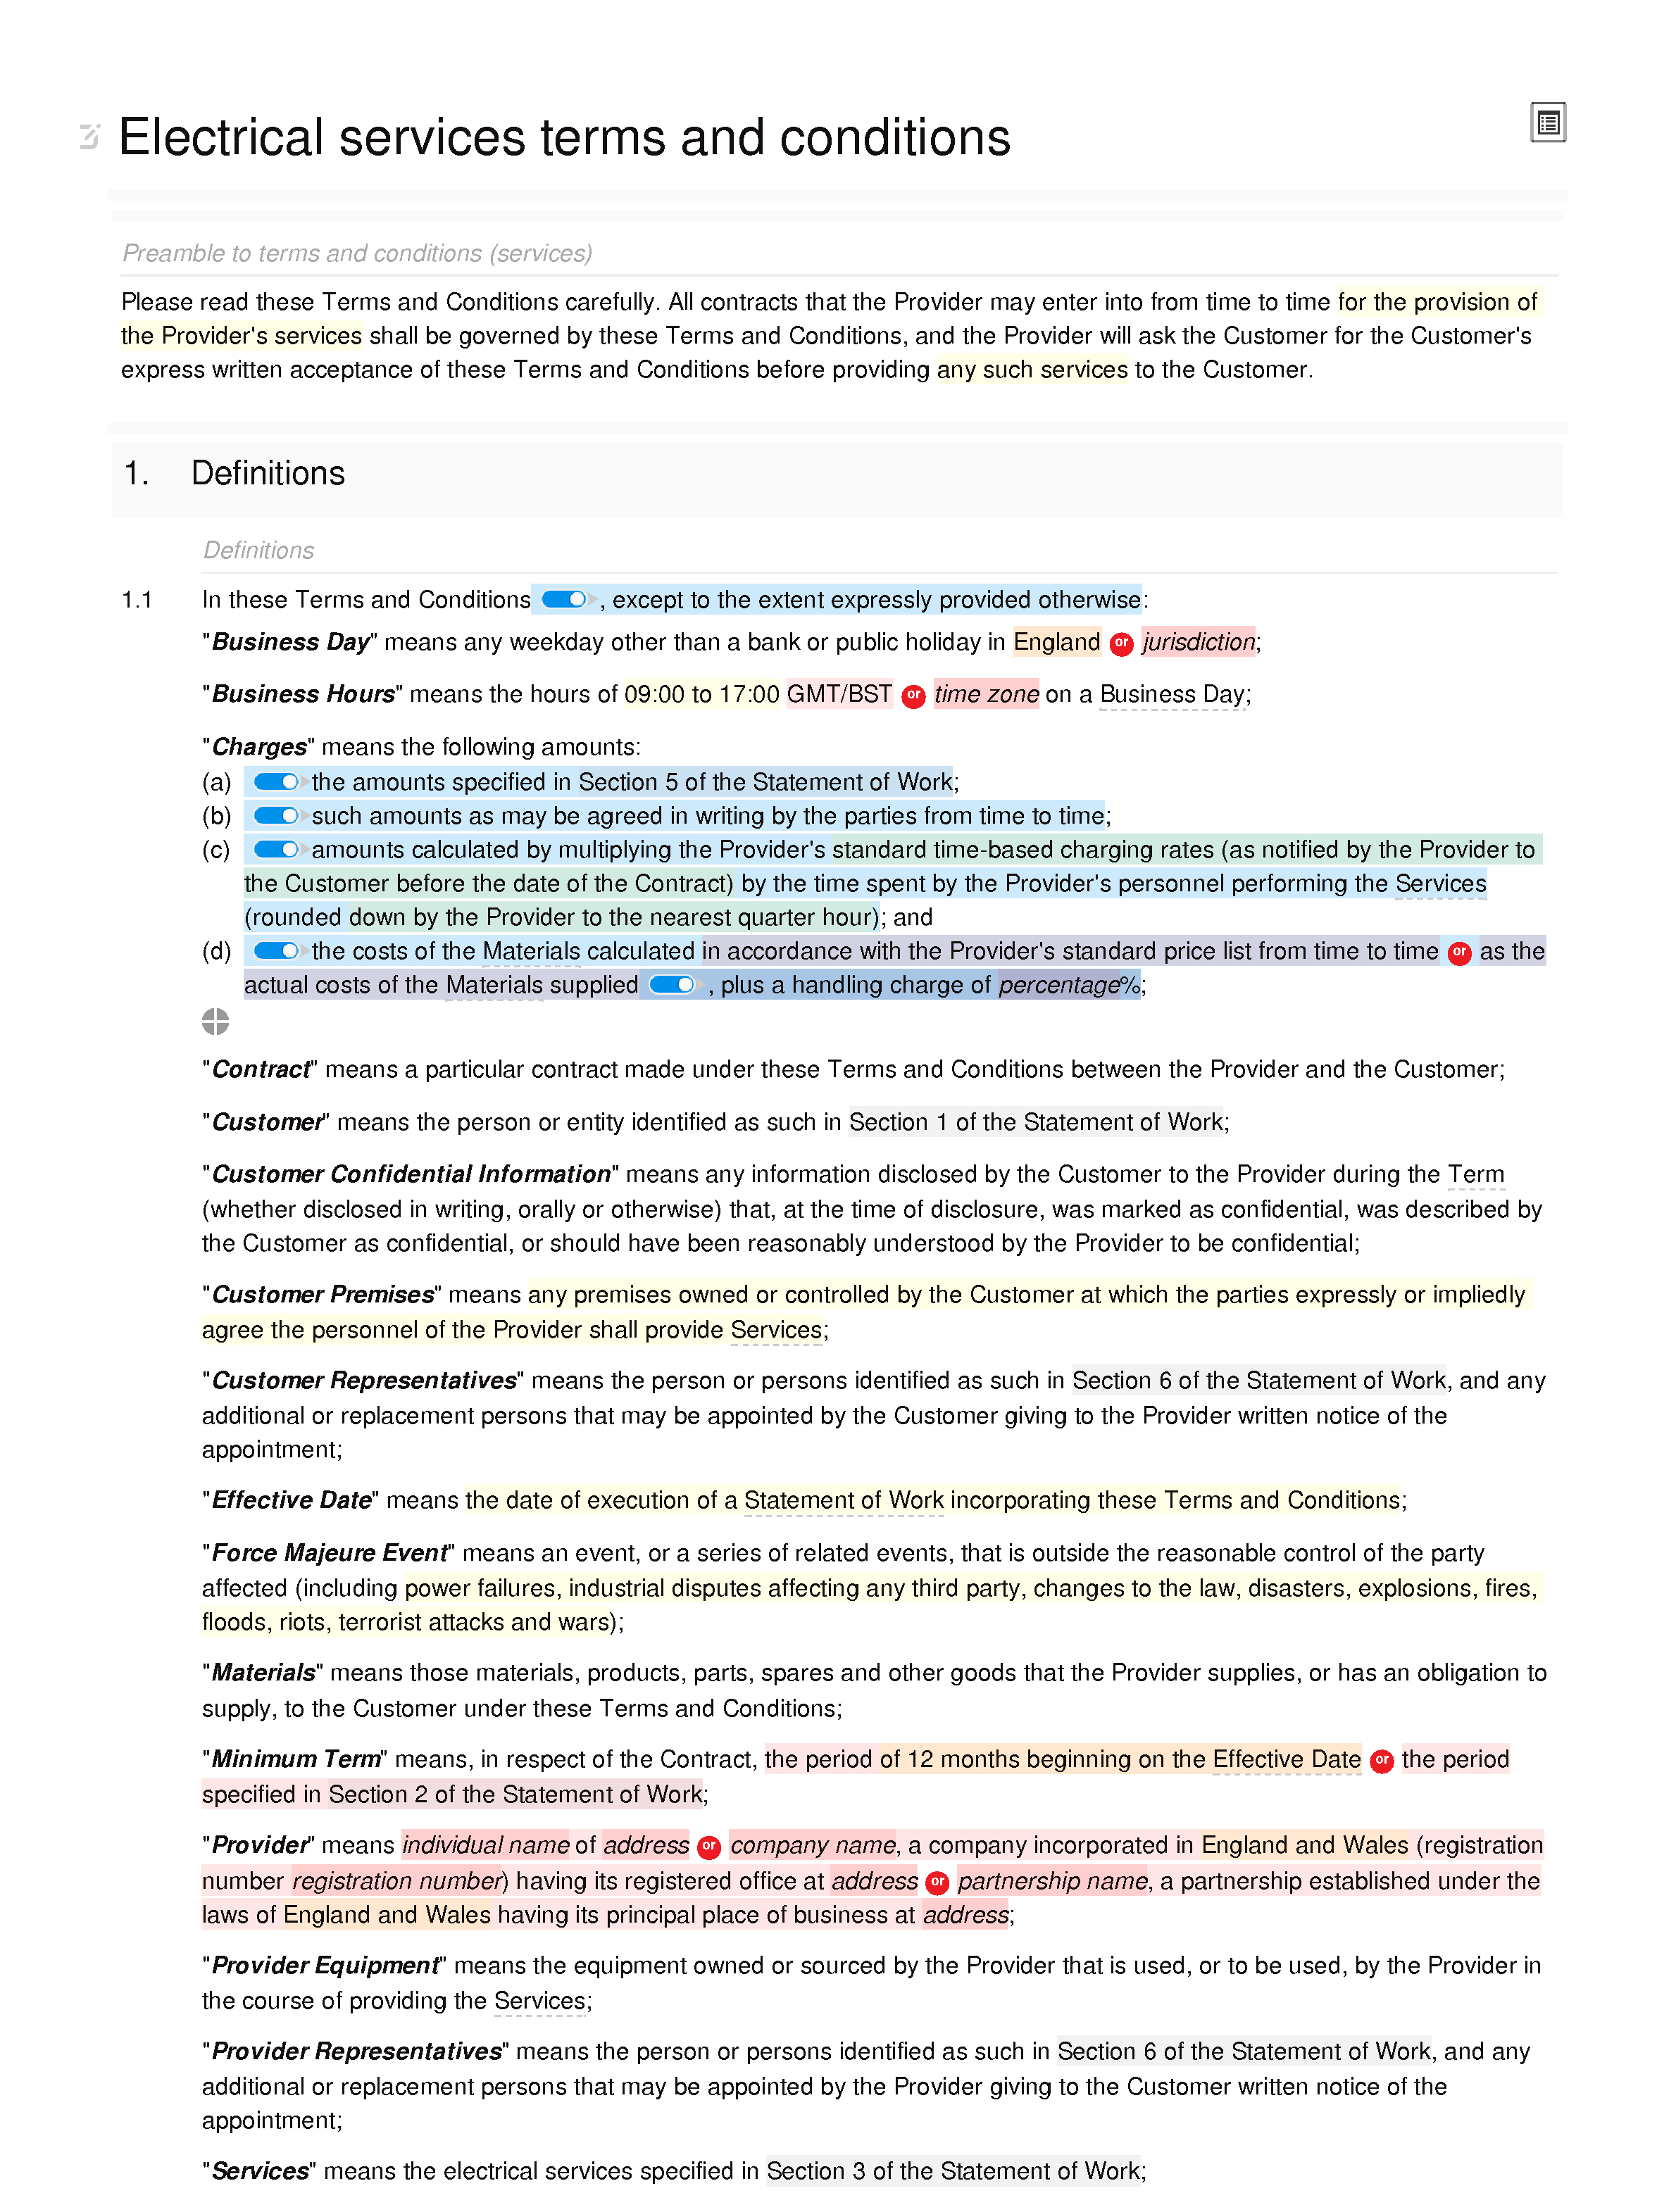 Electrical services terms and conditions document editor preview